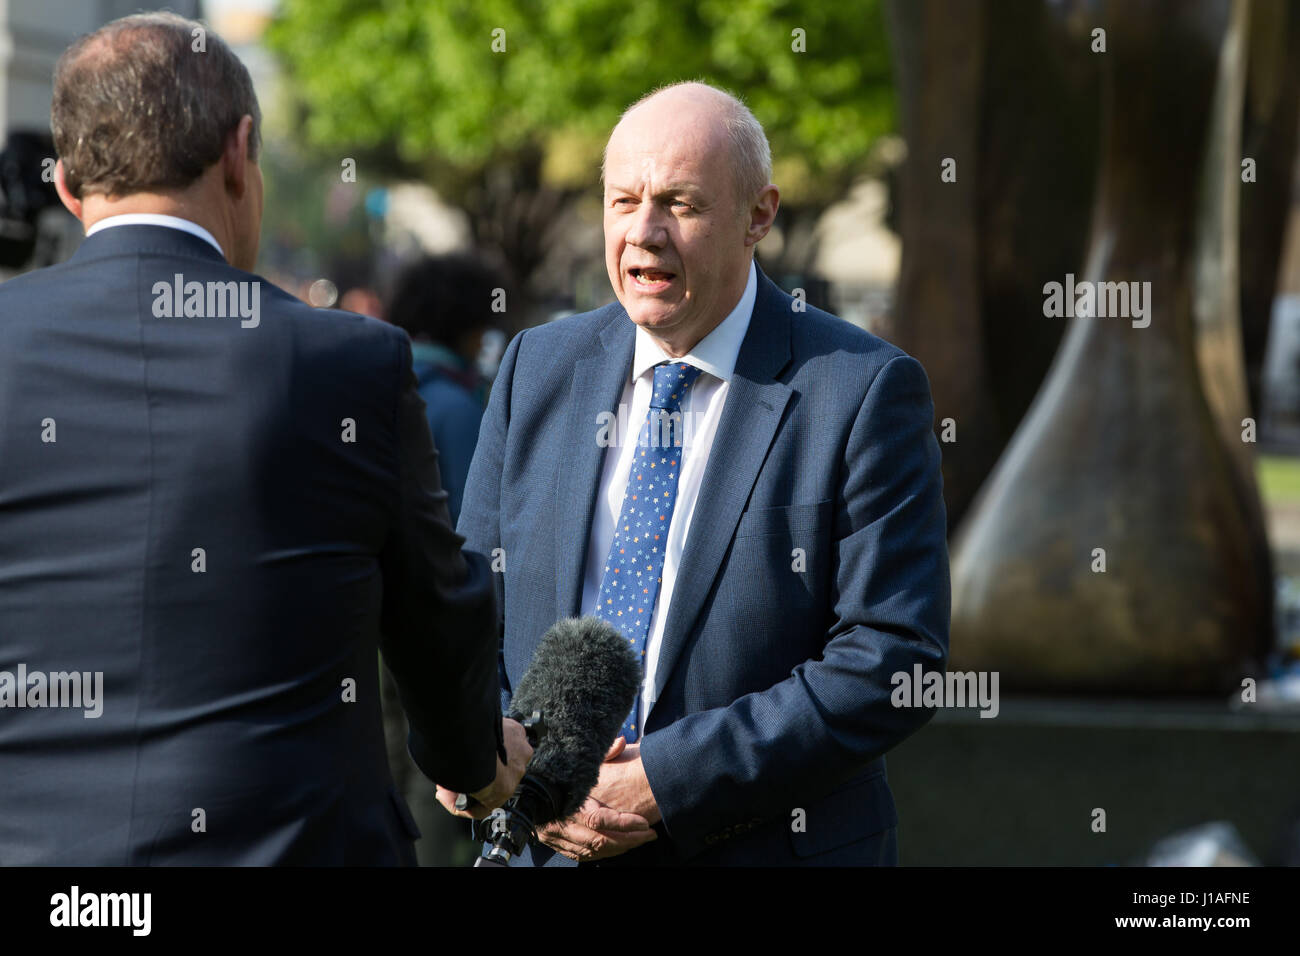 London, UK. 19th April, 2017. Damian Green MP, Work and Pensions Secretary, is interviewed on College Green following - Stock Image